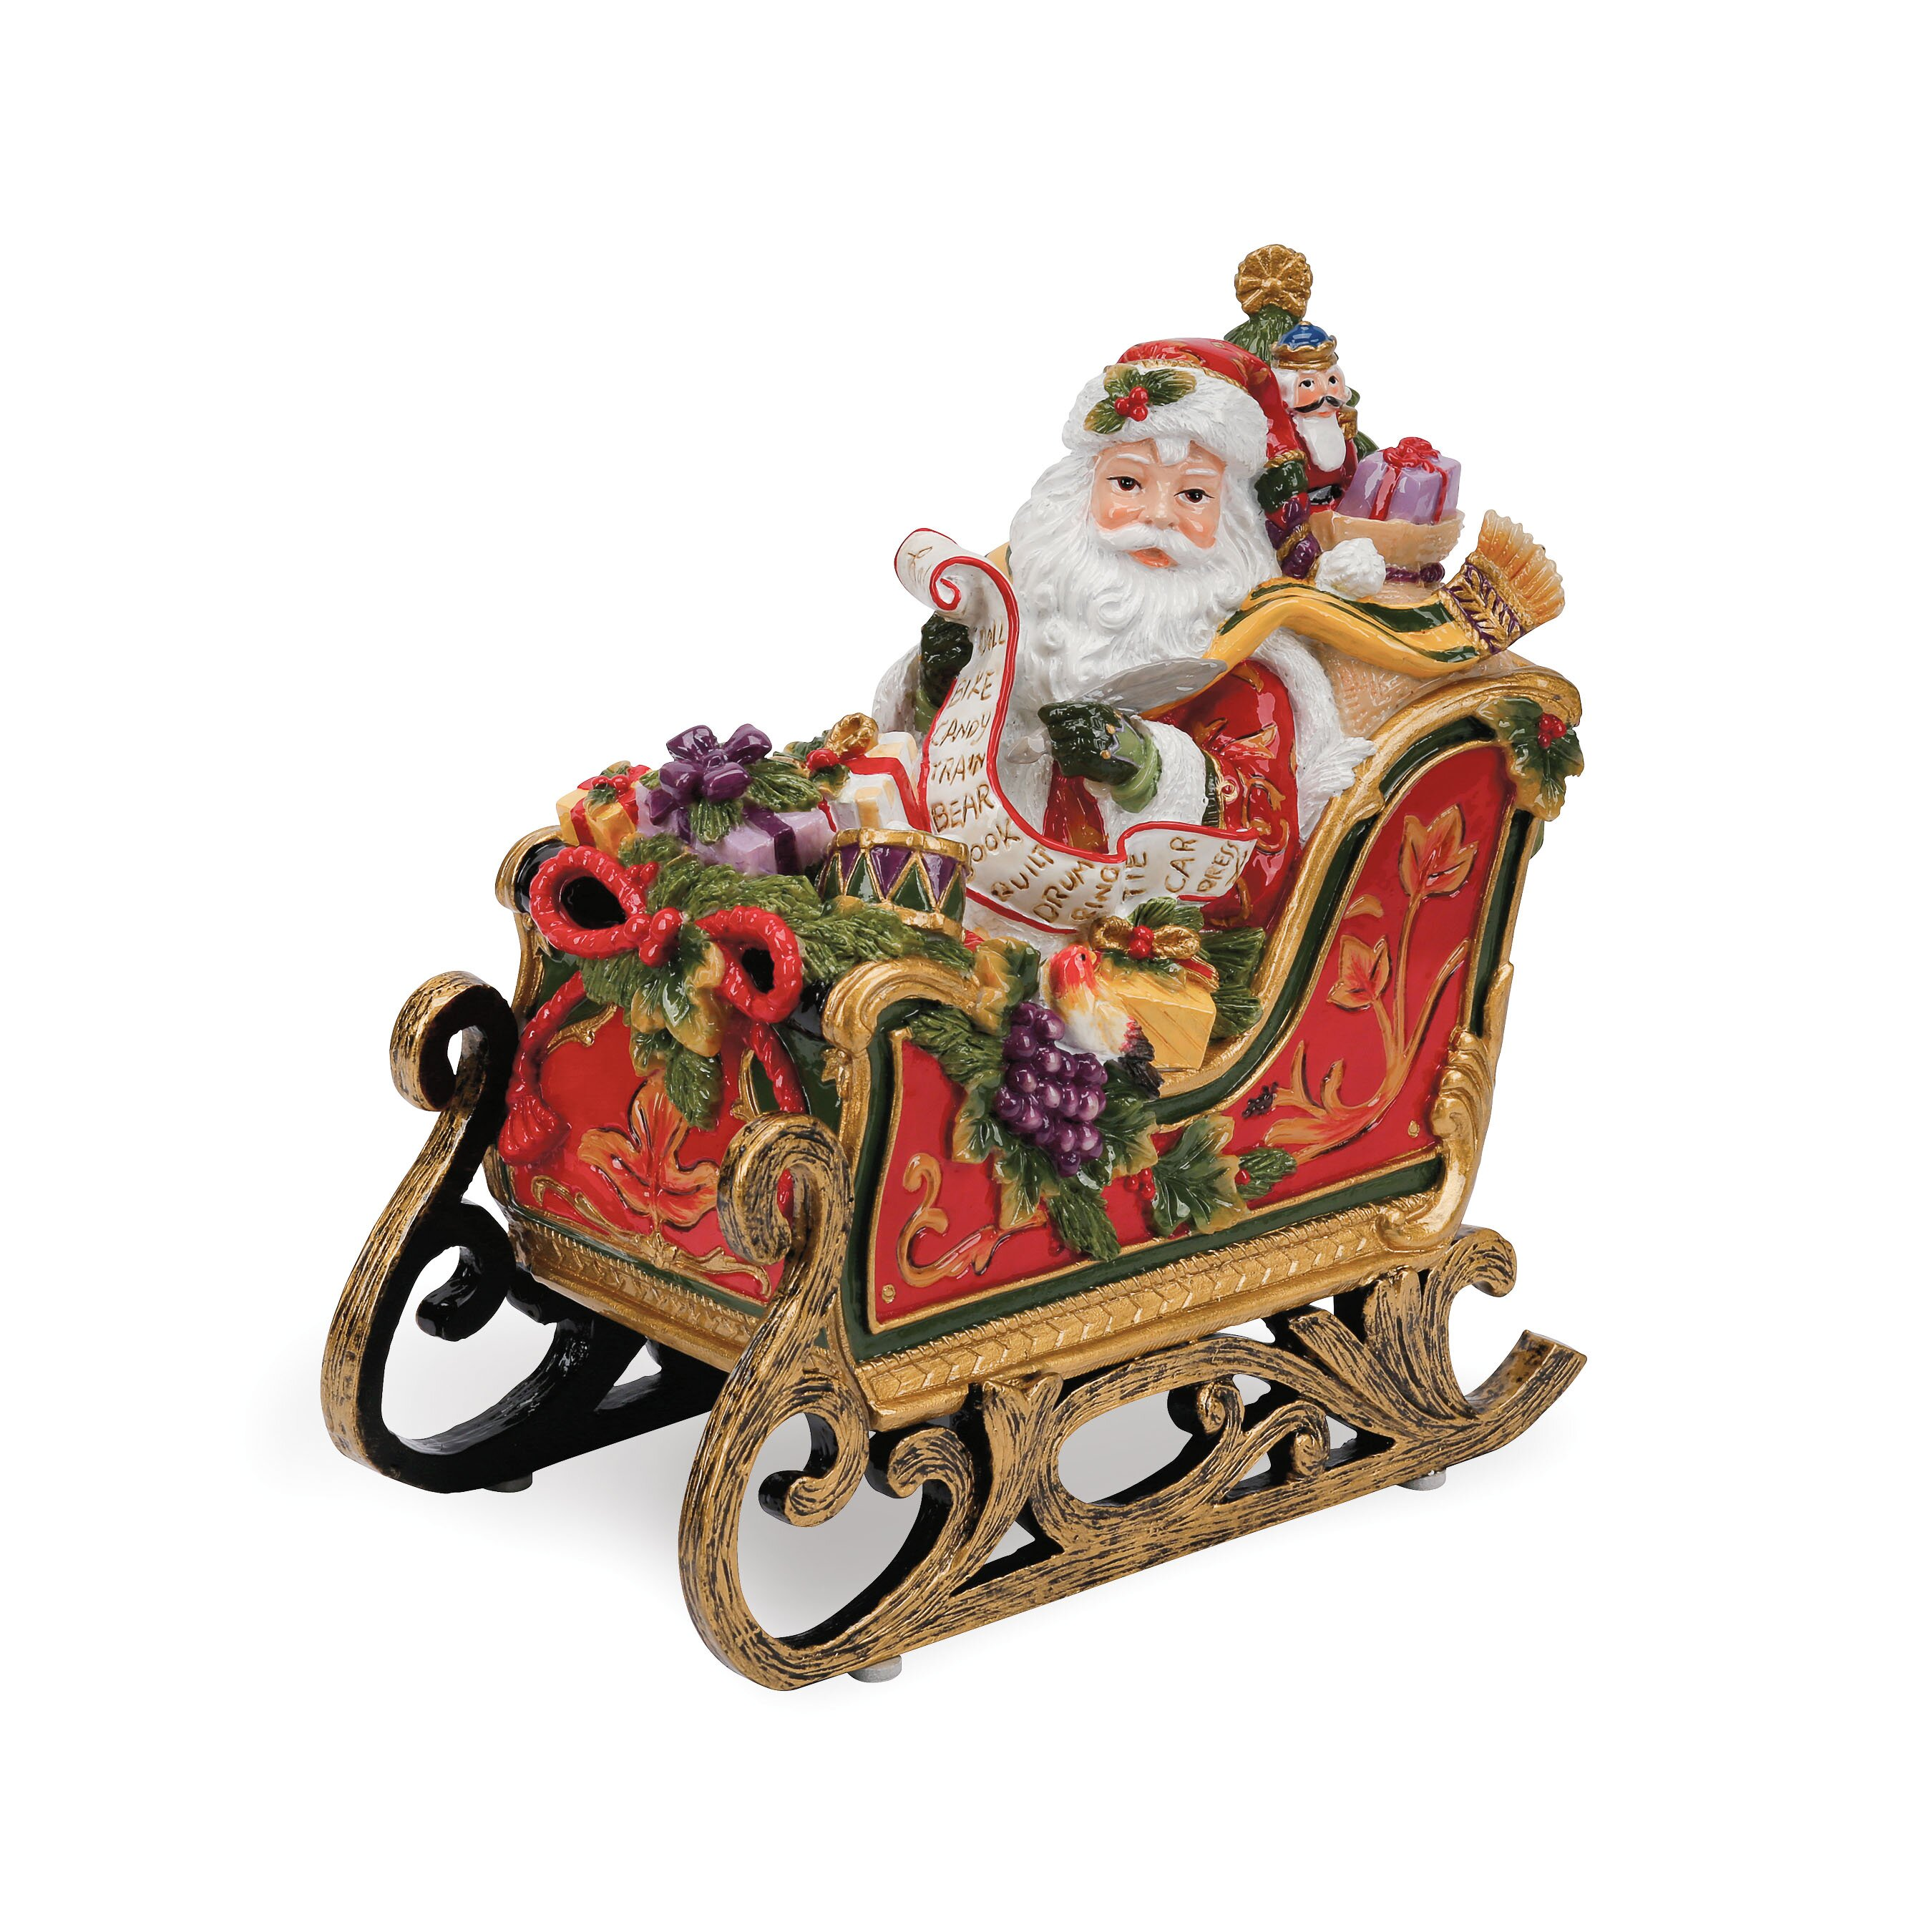 Fitz and floyd regal holiday santa in sleigh musical